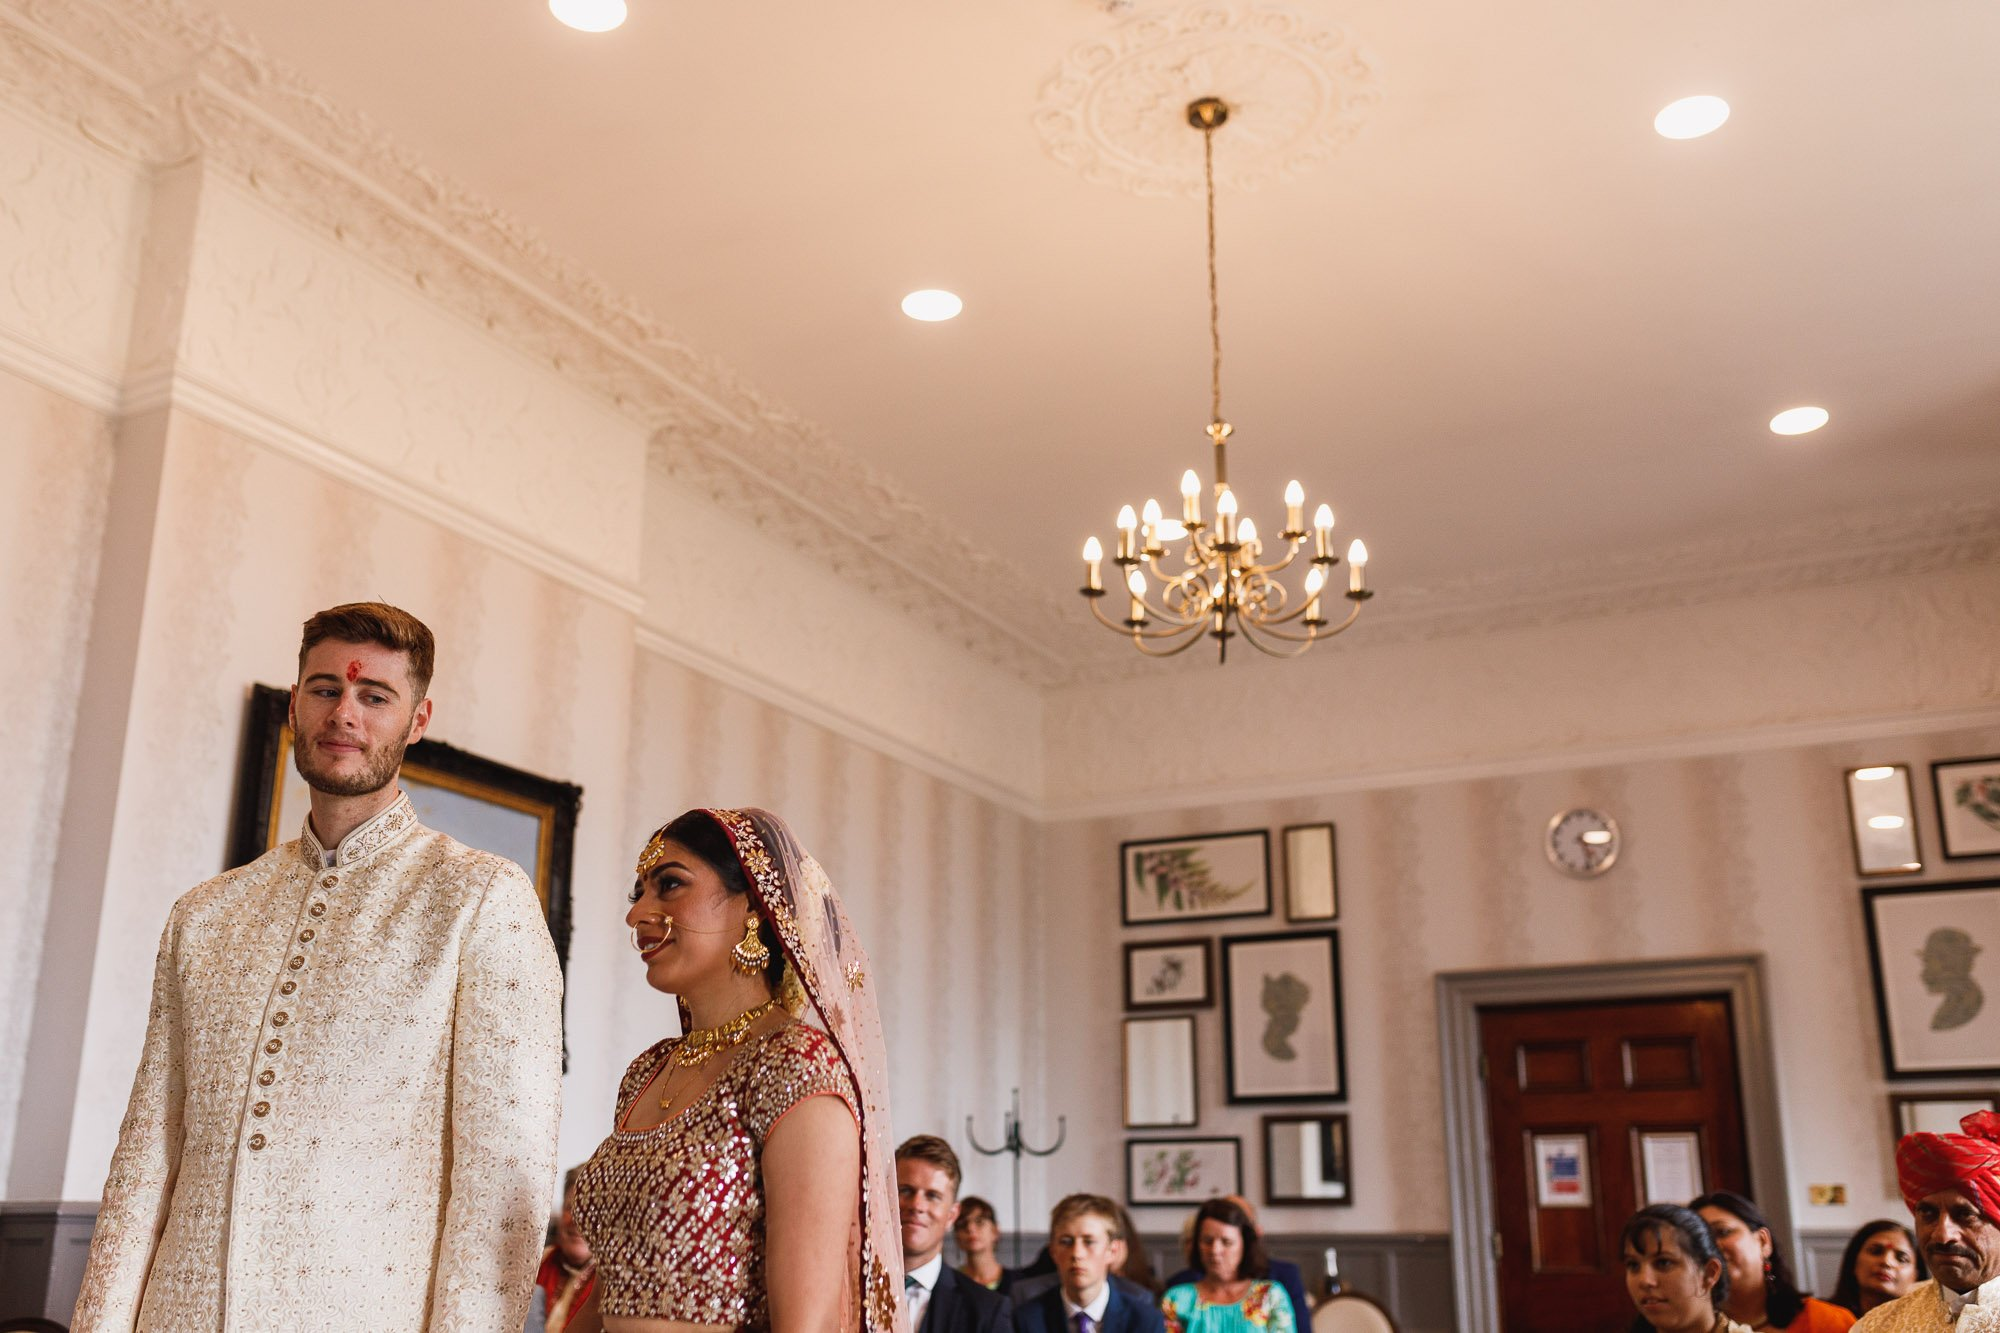 De Vere Wokefield Estate, Asian wedding photographer, civil ceremony